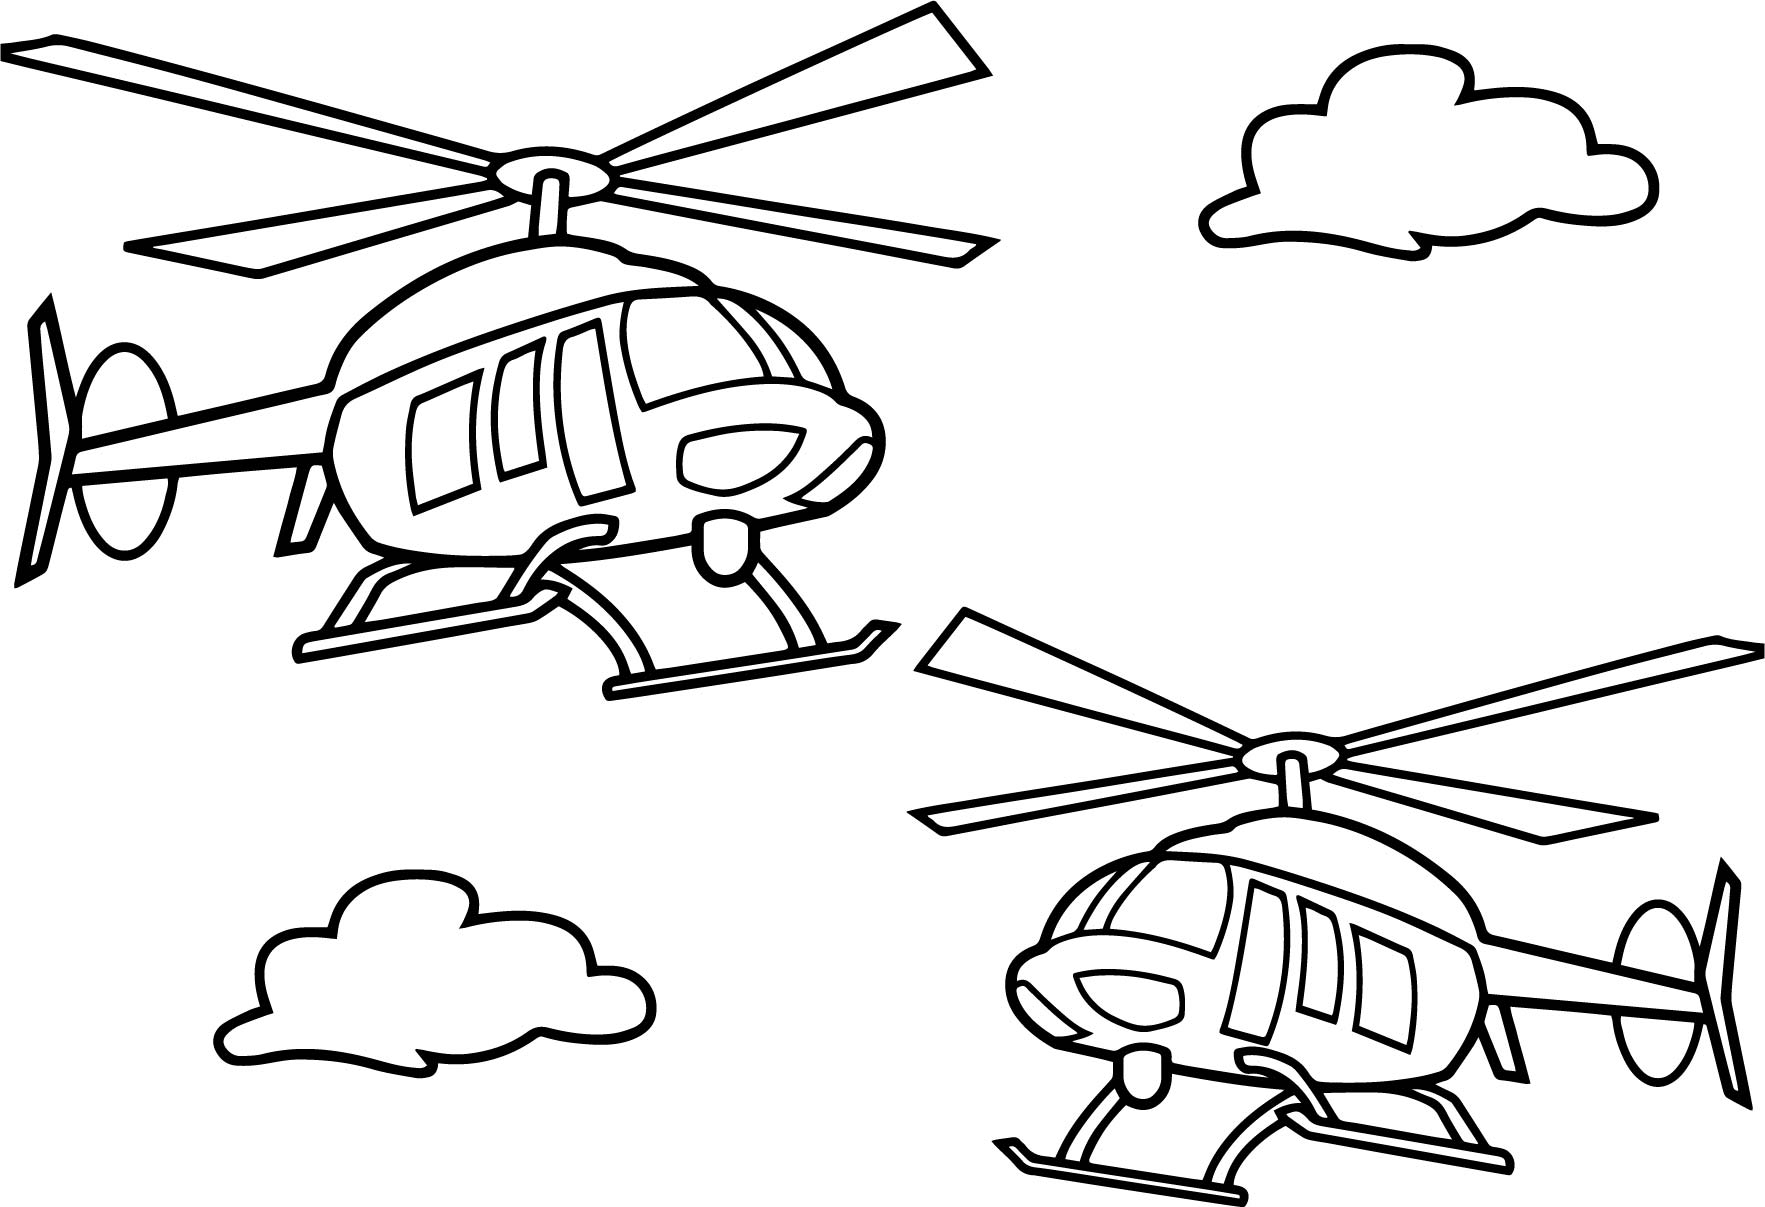 helicopter colouring pictures 8 free helicopter coloring pages for kids save print helicopter pictures colouring